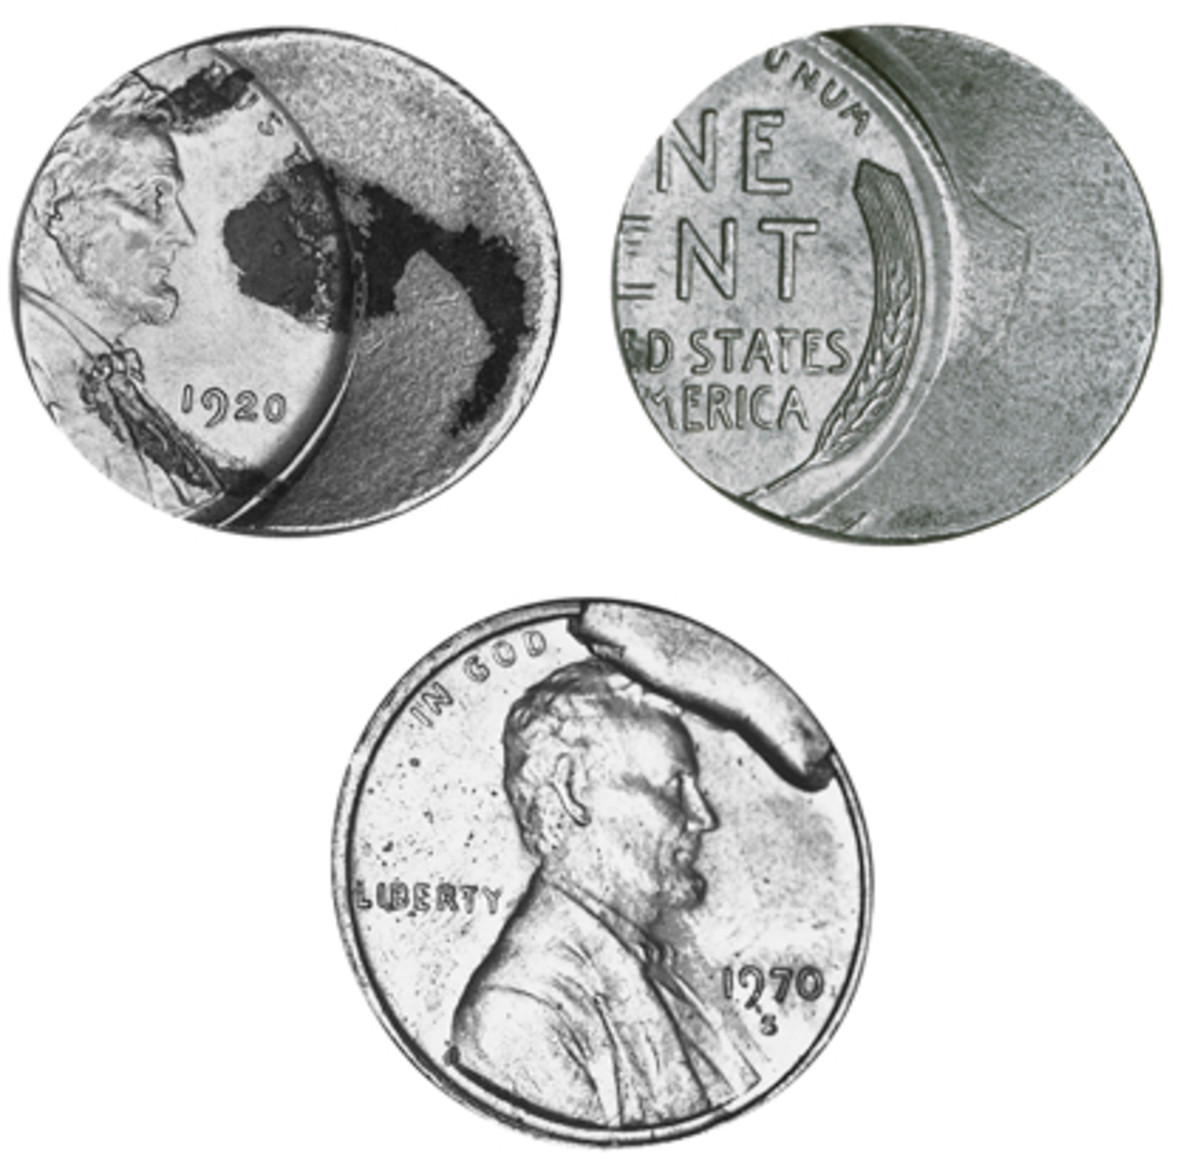 Not only was the top cent struck off center, it was also struck on a planchet intended for an Argentine 5 centavo. As shown by the cent at bottom, when a piece breaks off a die, there is nothing to strike the planchet, leaving unstruck metal popularly called a cud.